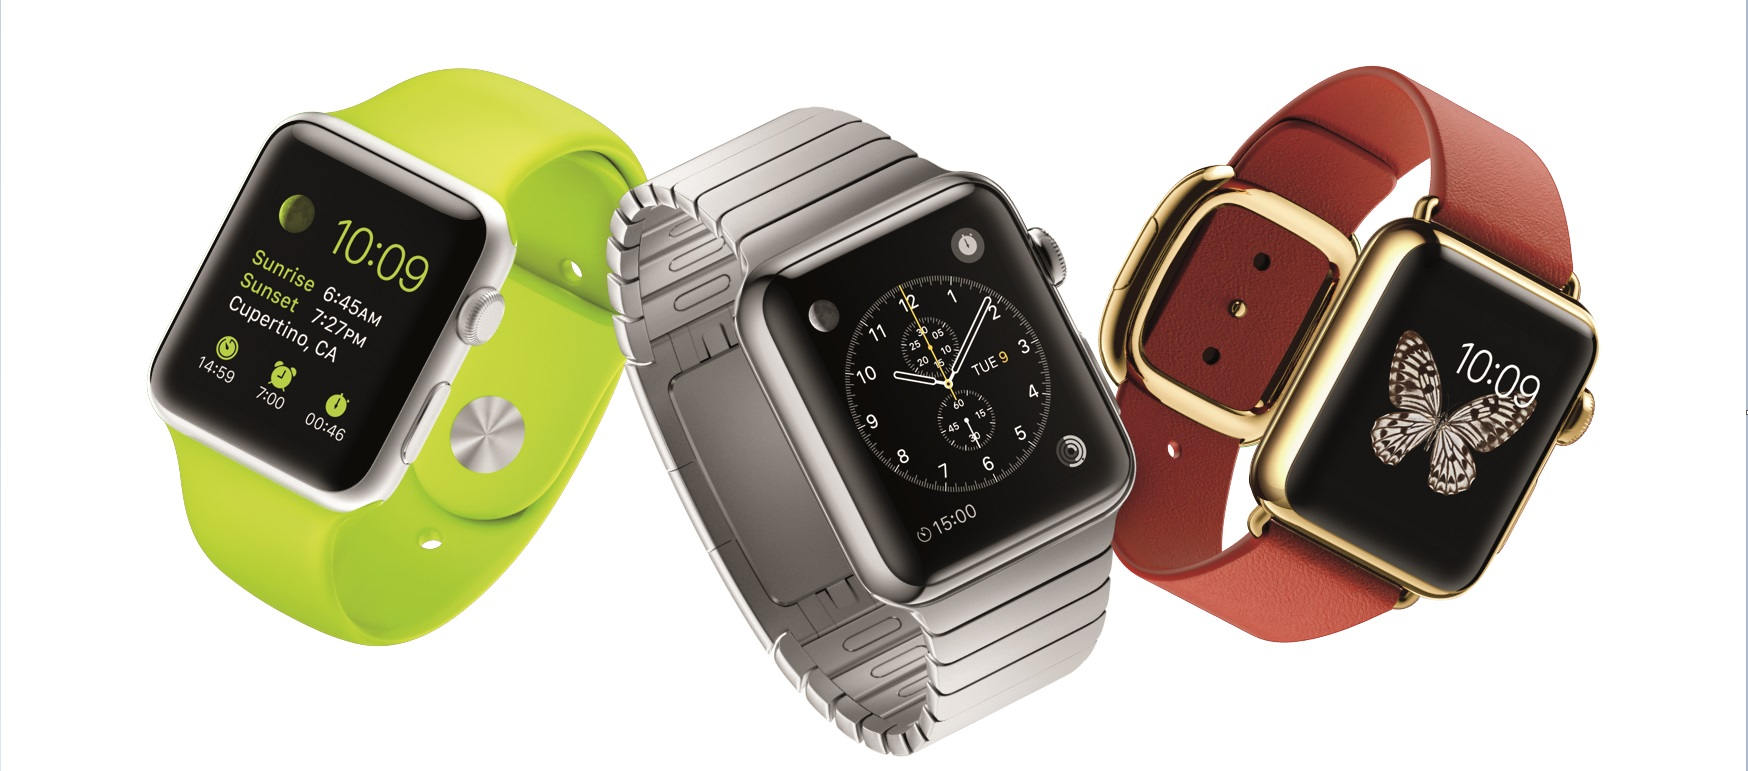 One more thing… Apple Watch